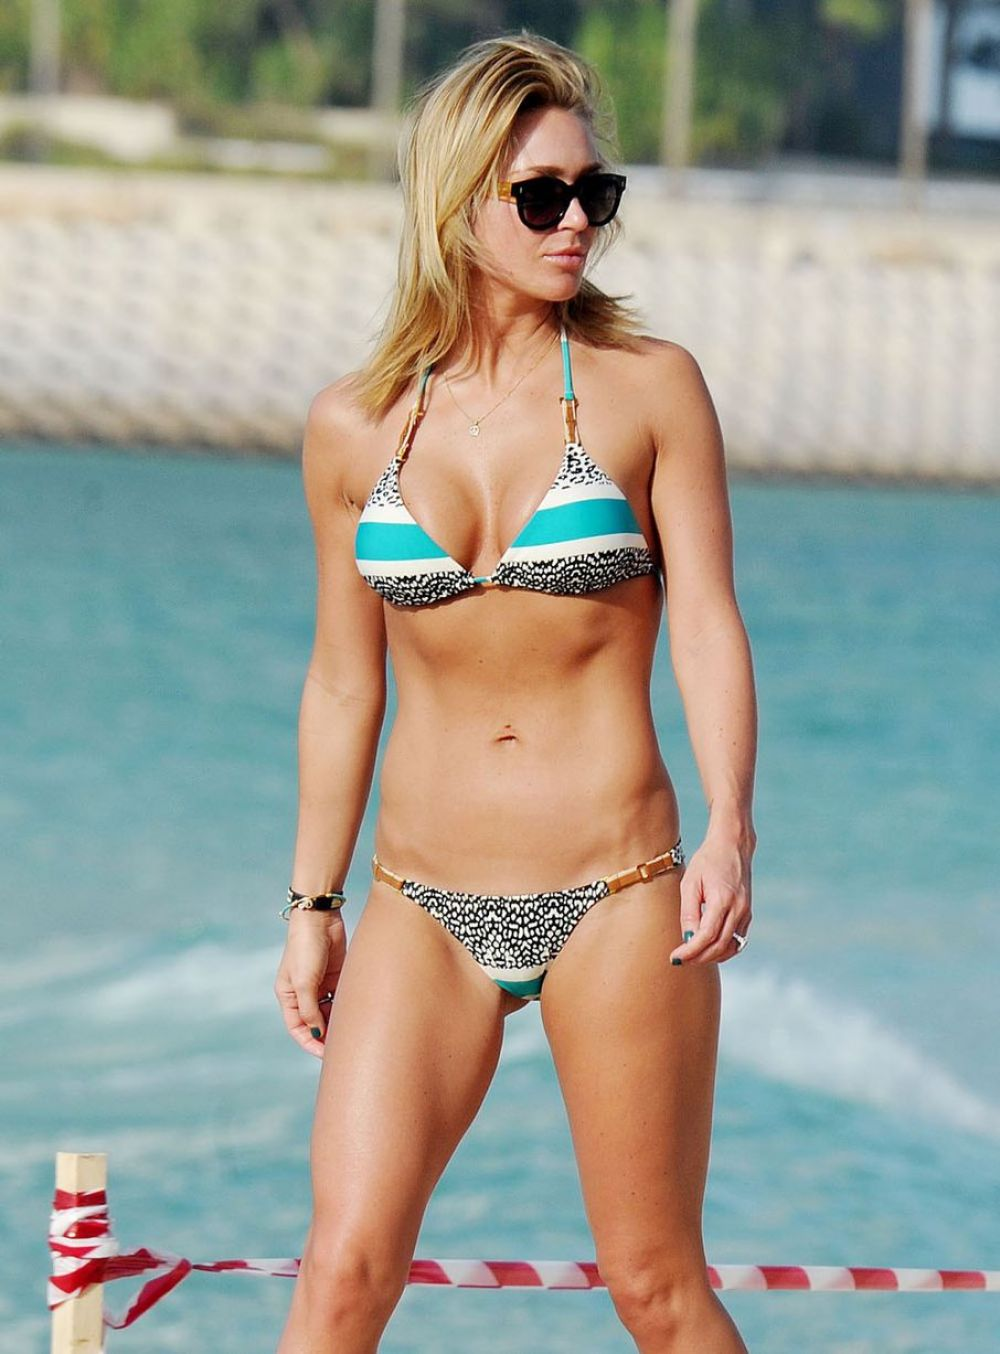 ALEX GERRARD in Bikini on the Beach in Dubai